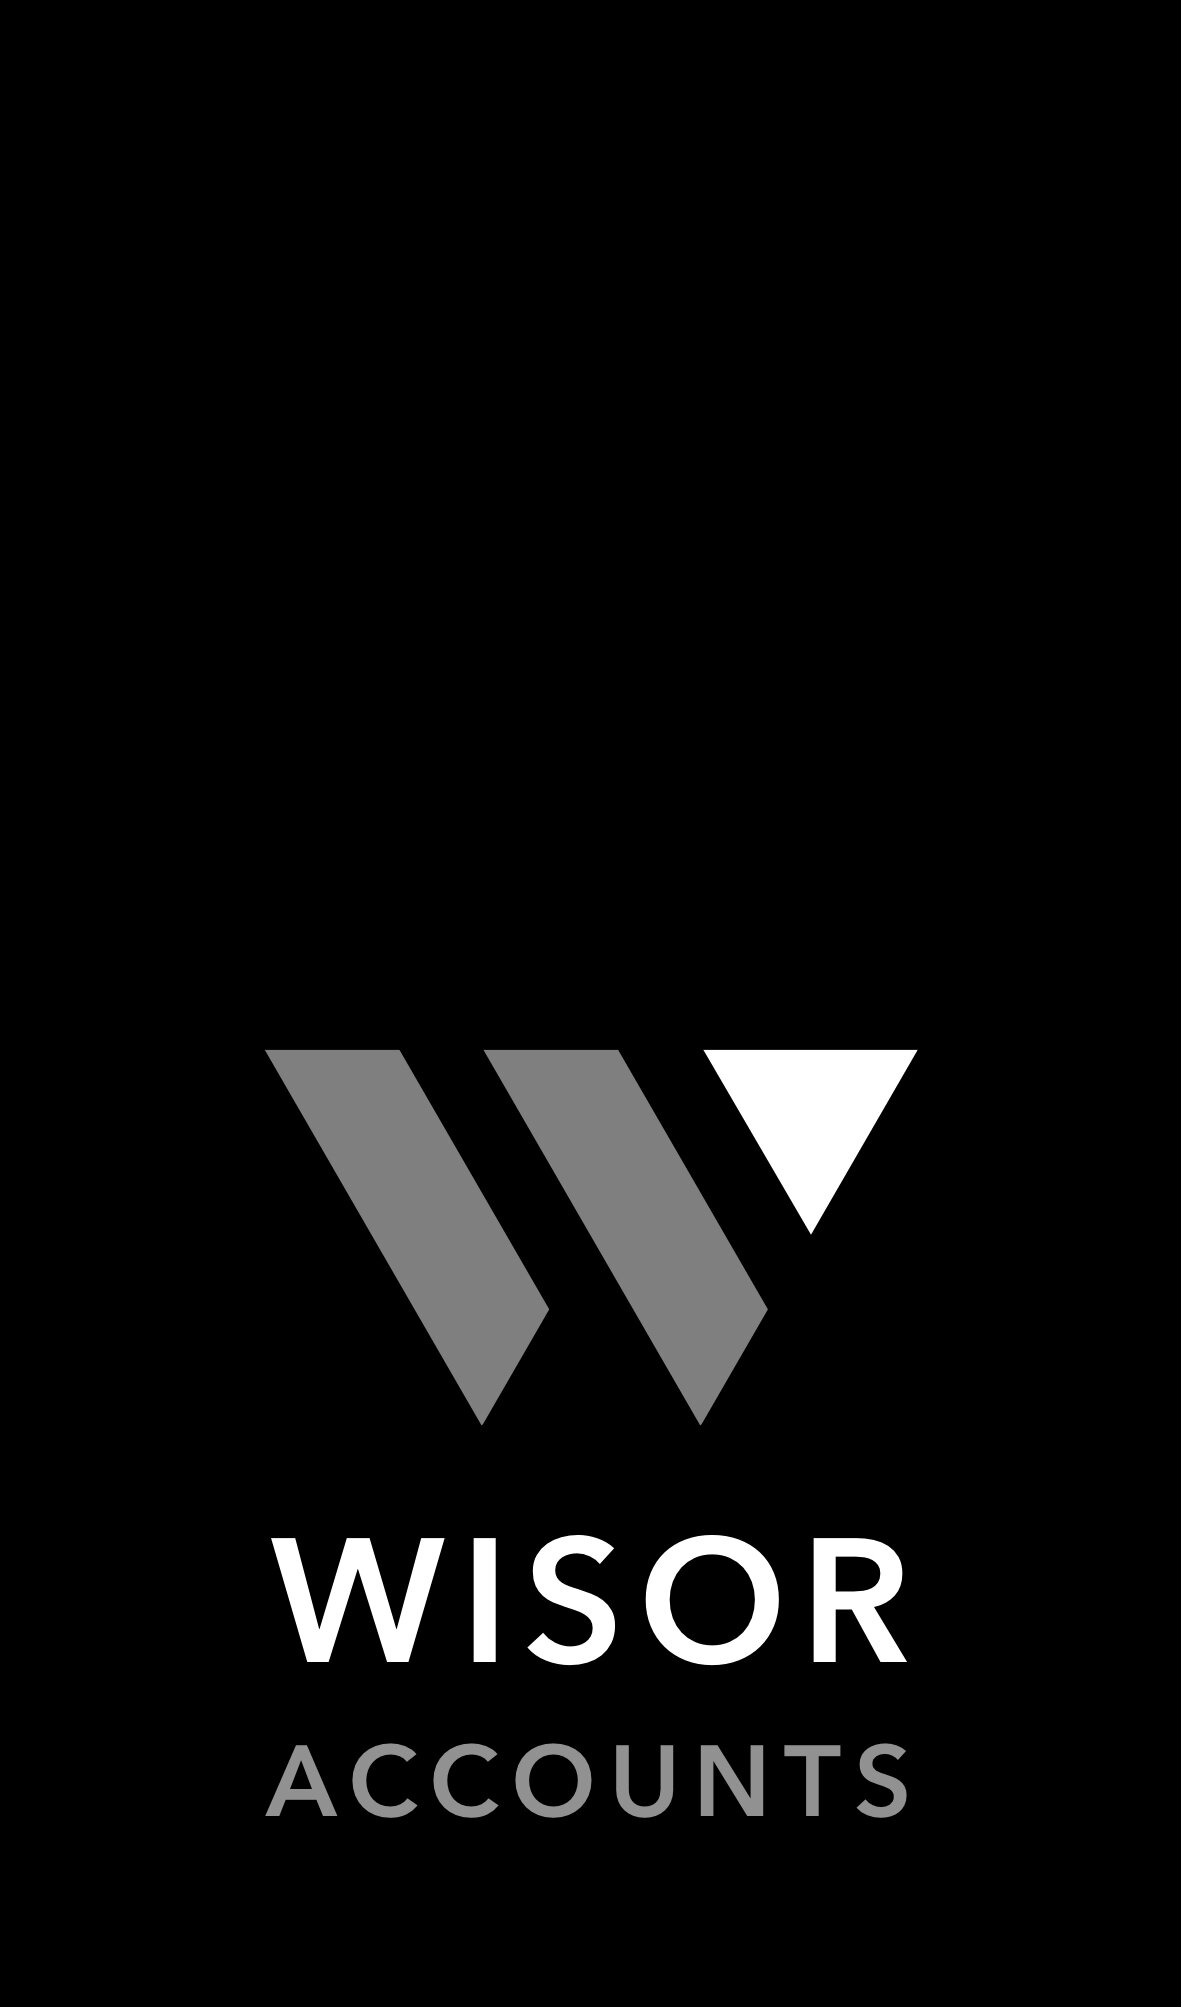 Wisor Accounts Document Logo.png  For download click on image.